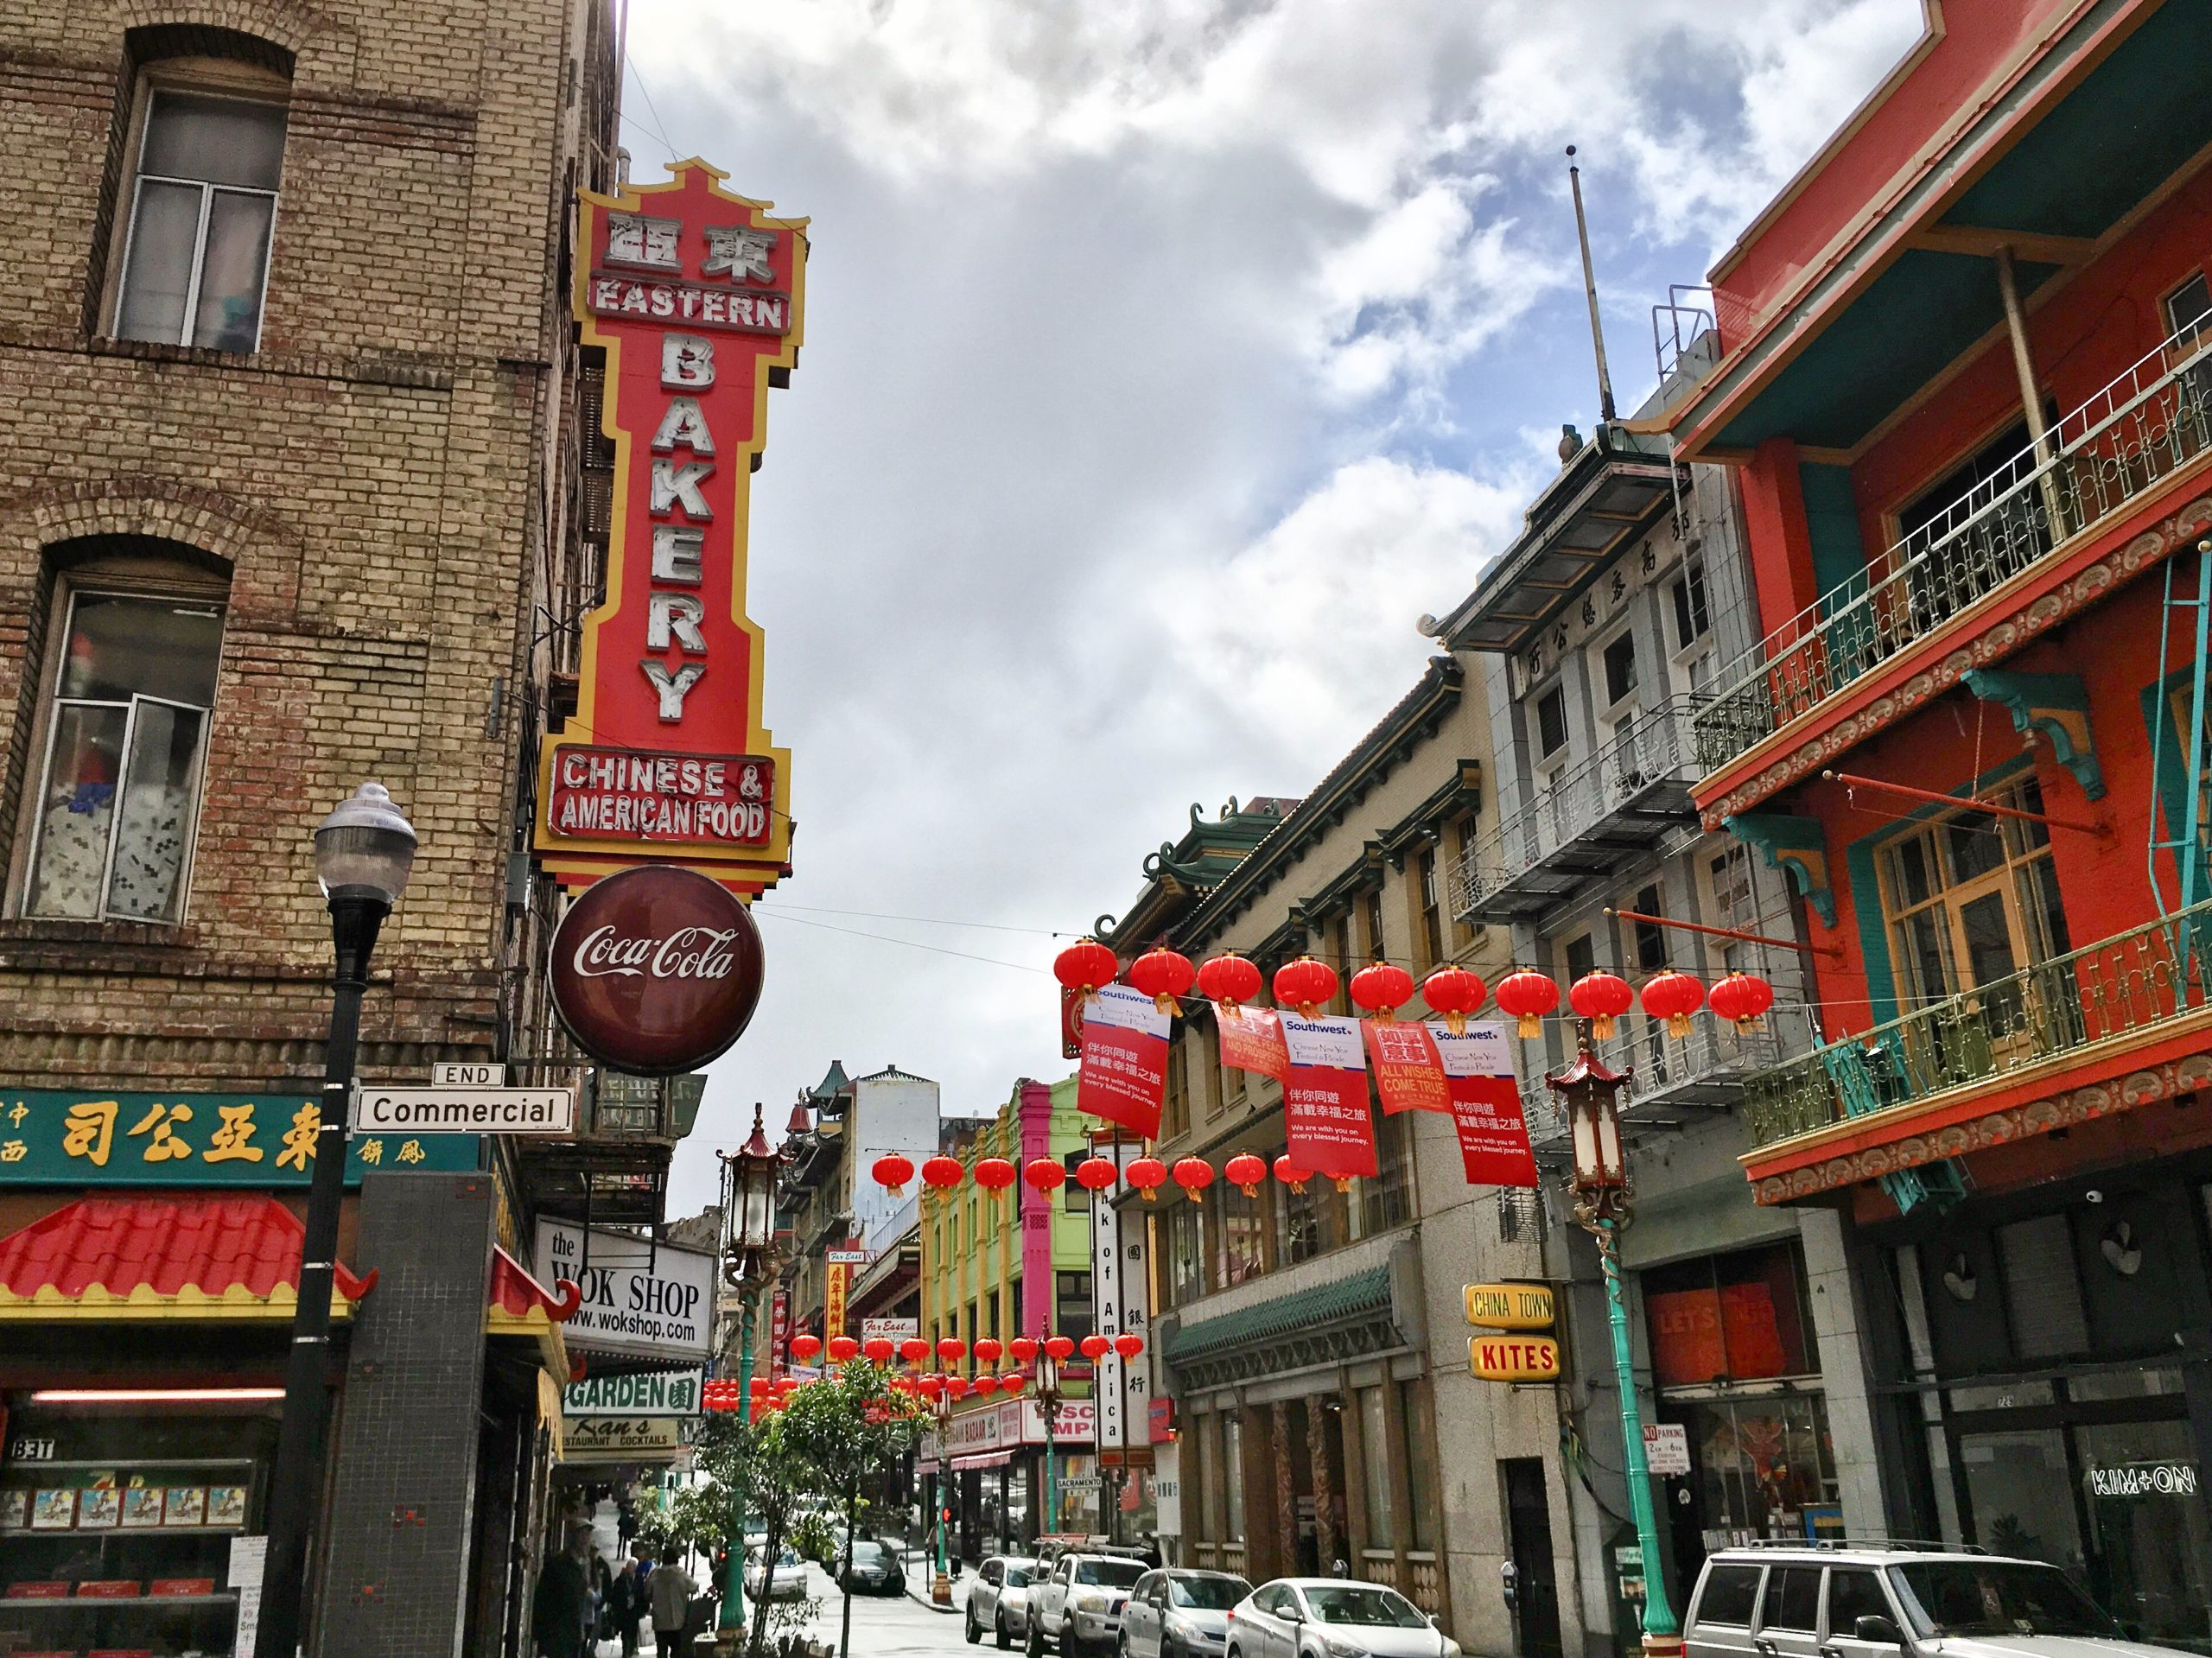 Image of Eastern Bakery in San Francisco Chinatown, which will benefit from the investments made by state and municipal governments in 2021